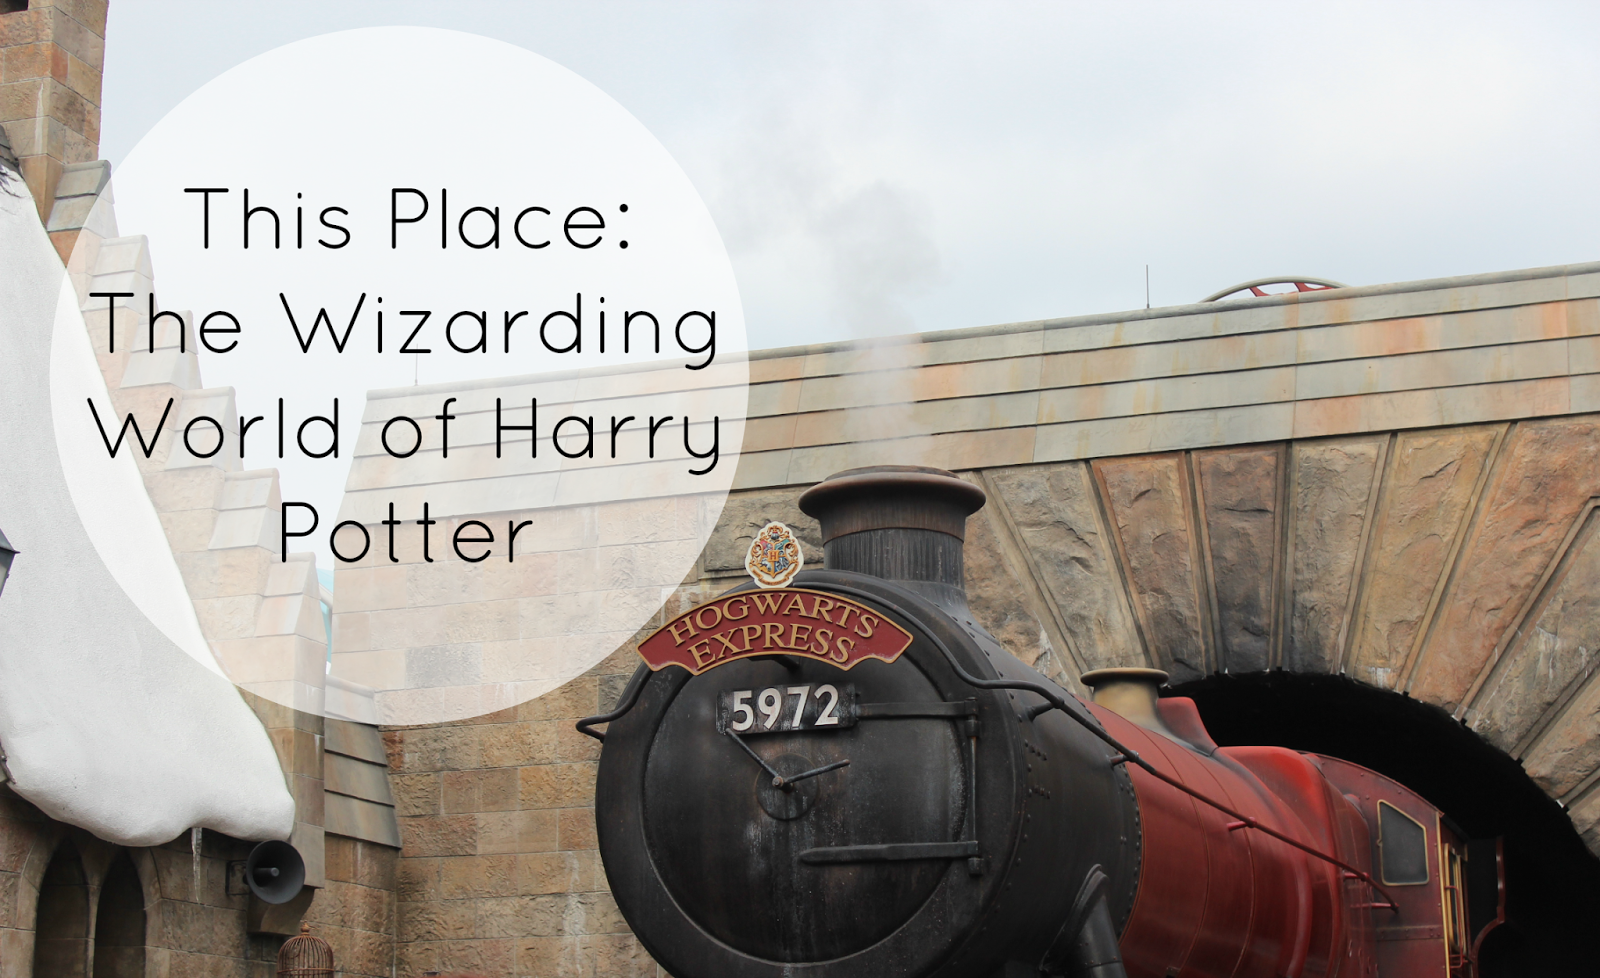 The-Wizarding-World-of-Harry-Potter-Hogwarts-Express